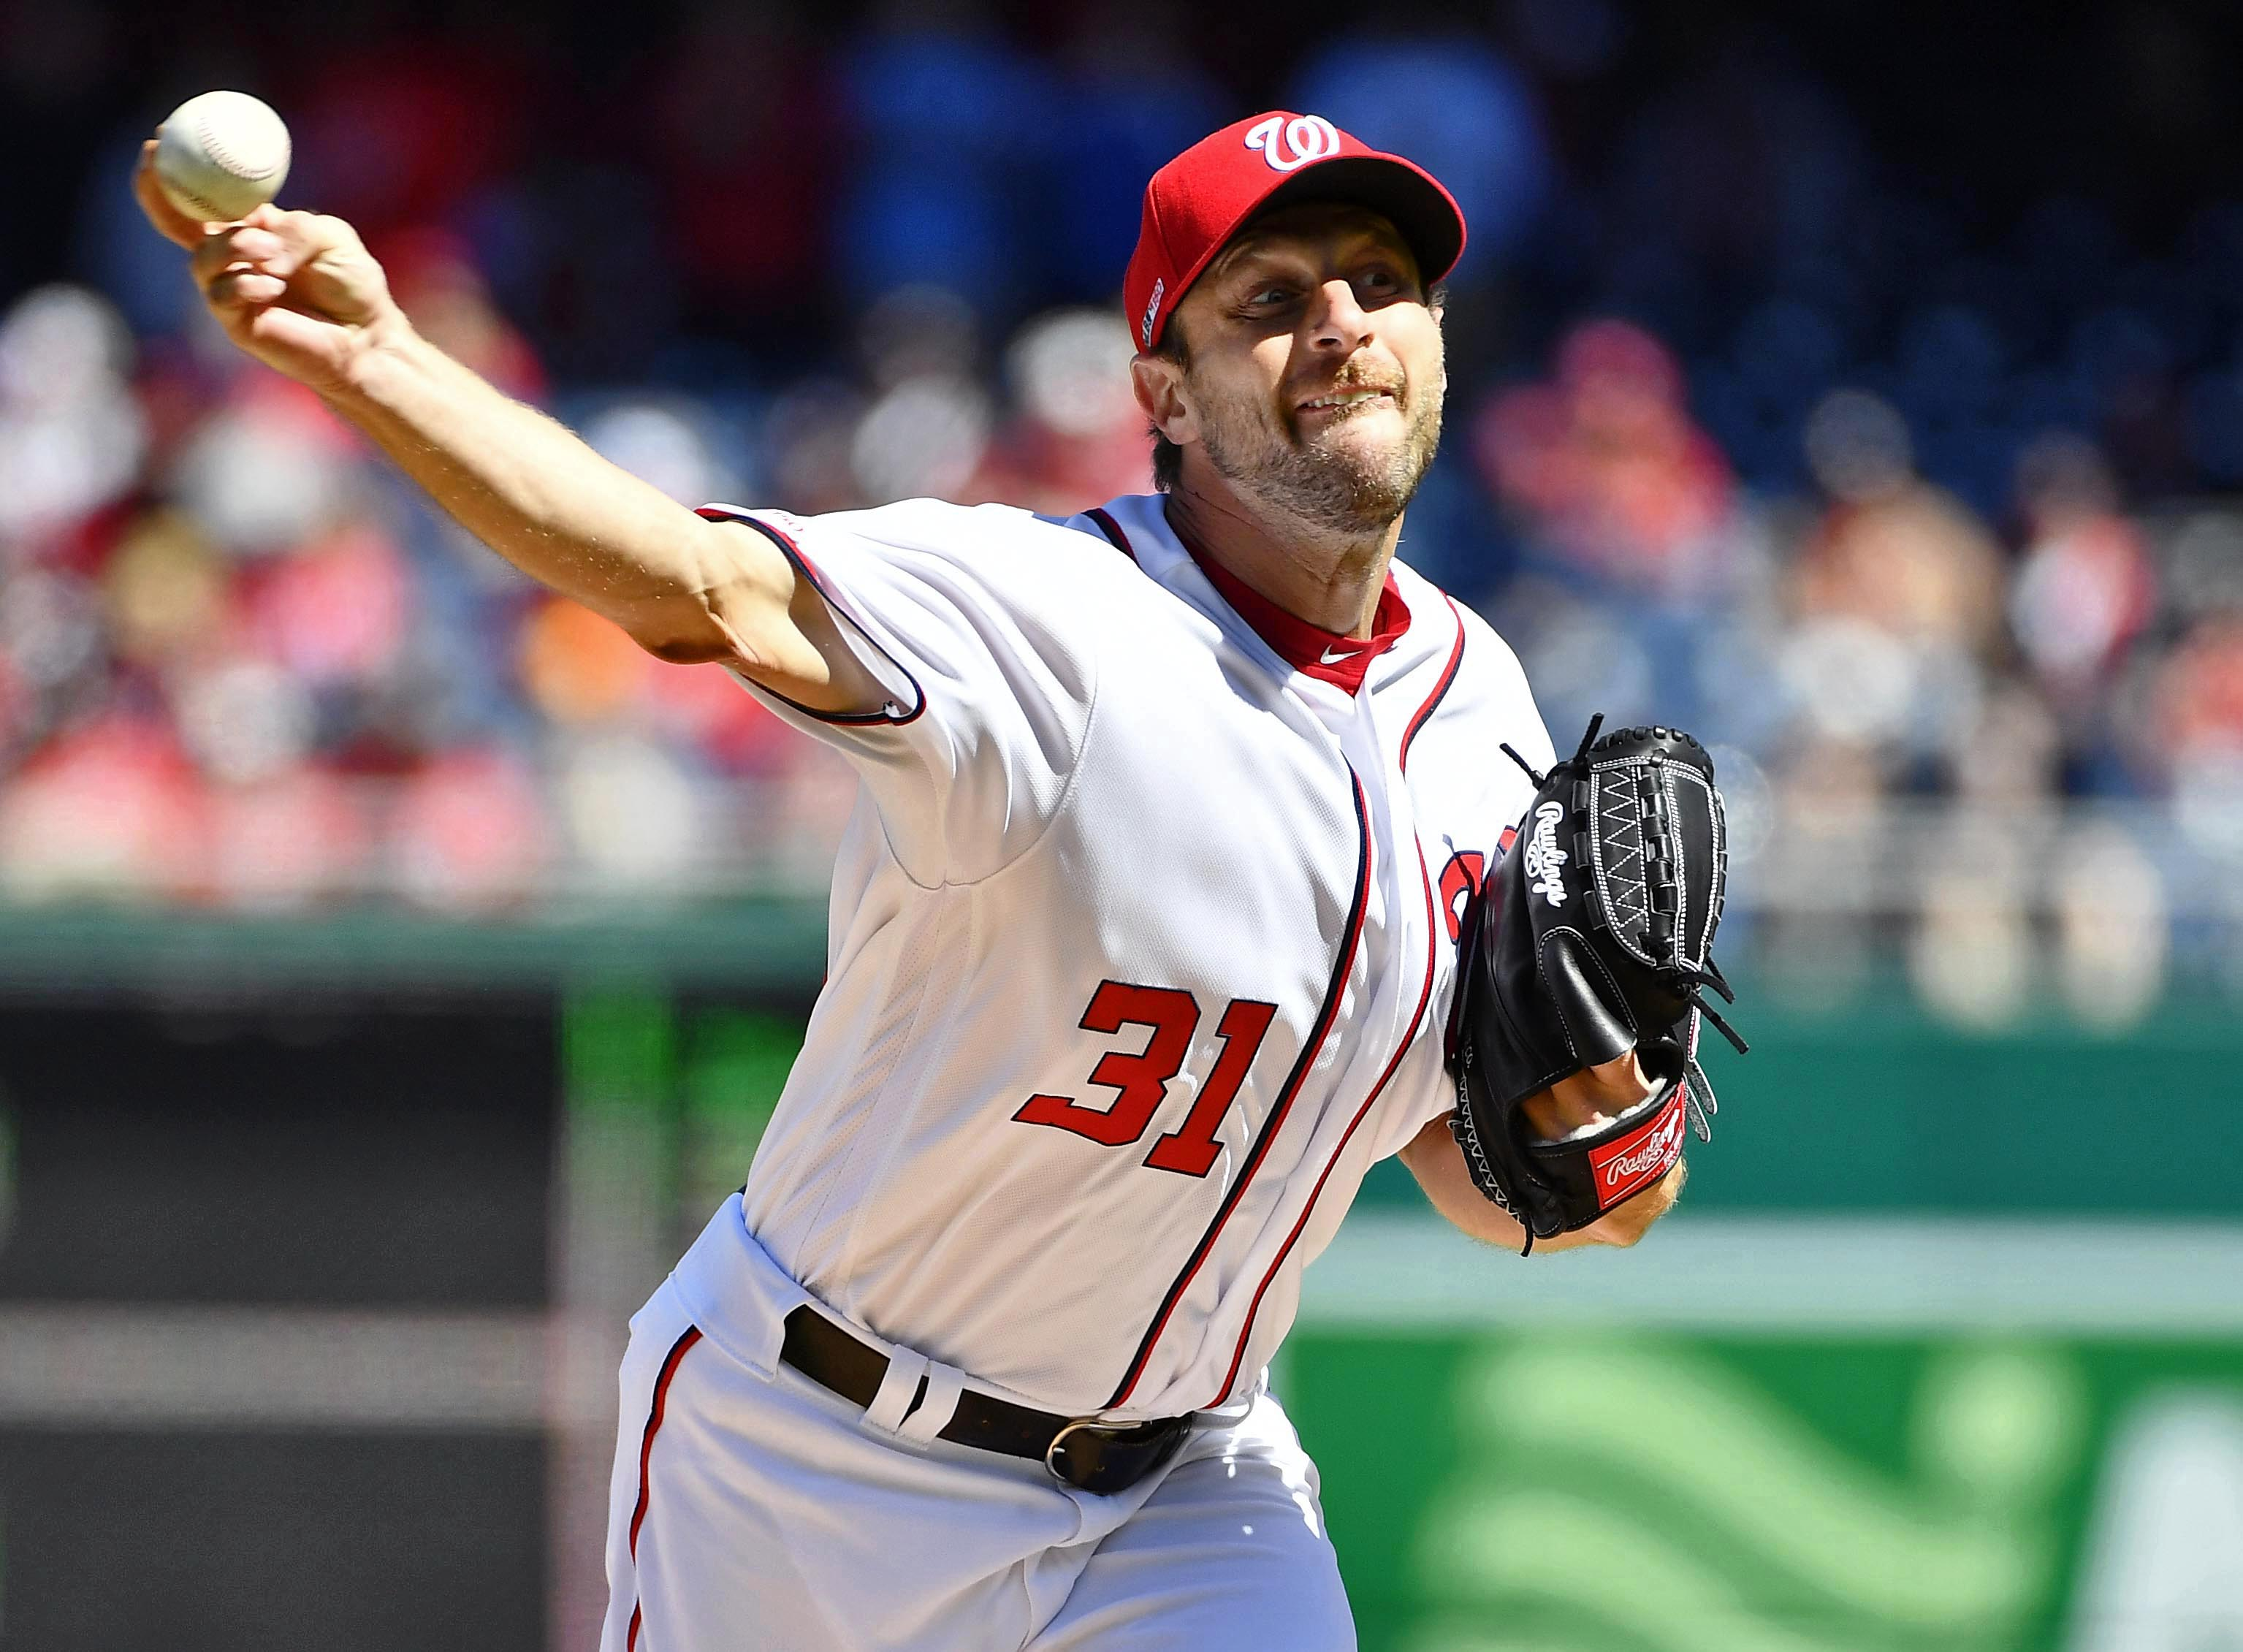 Max Scherzer becomes fifth MLB pitcher with 100 games of 10+ strikeouts